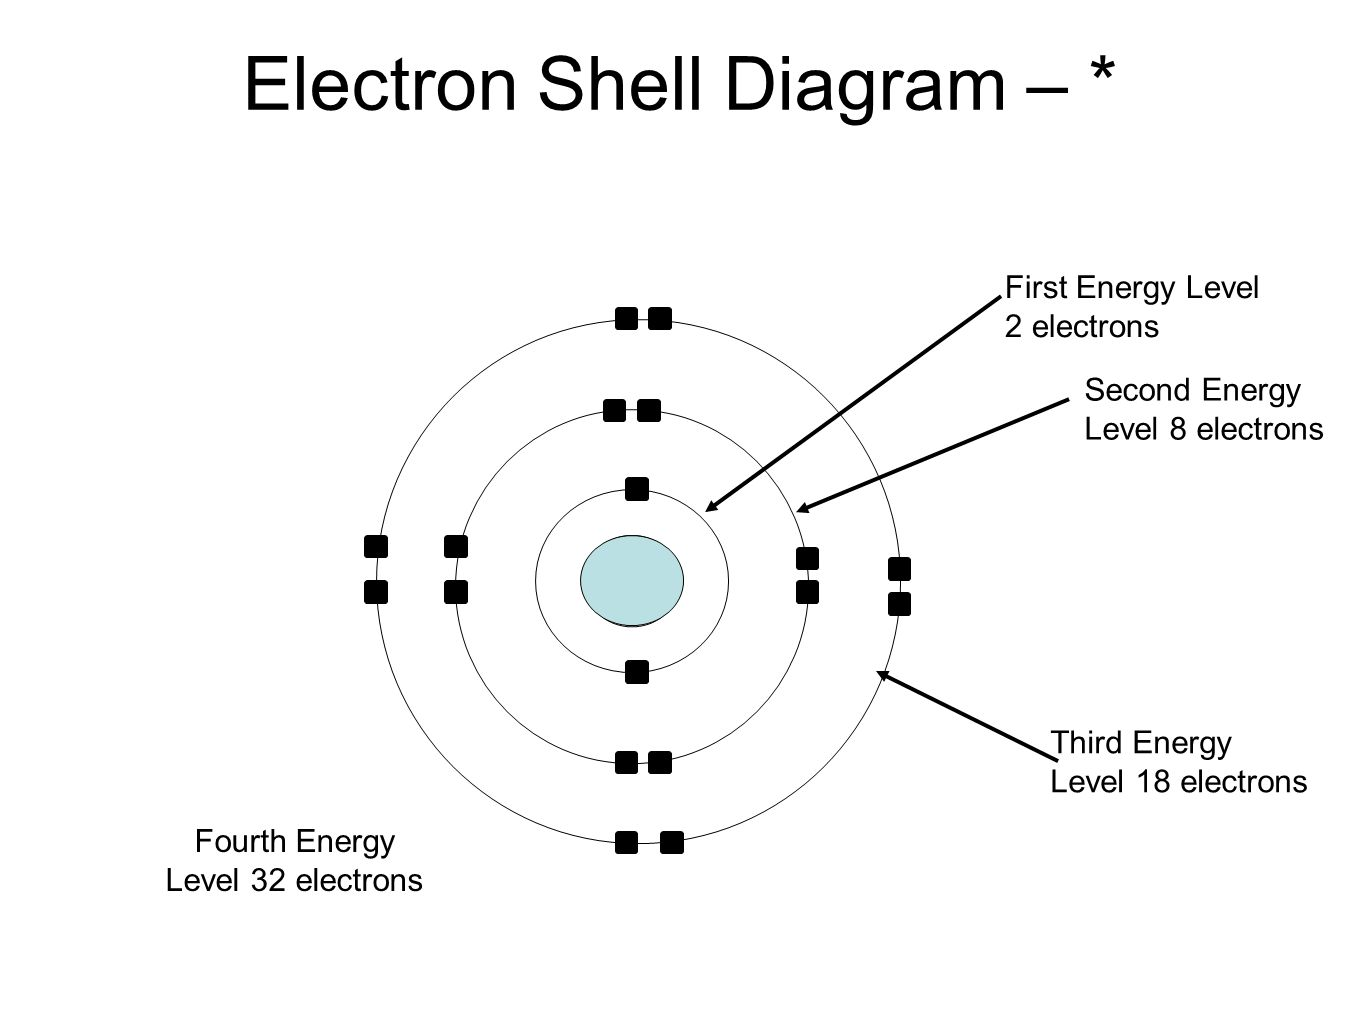 Electron Shell Diagram – * First Energy Level 2 electrons Second Energy Level 8 electrons Third Energy Level 18 electrons Fourth Energy Level 32 elect